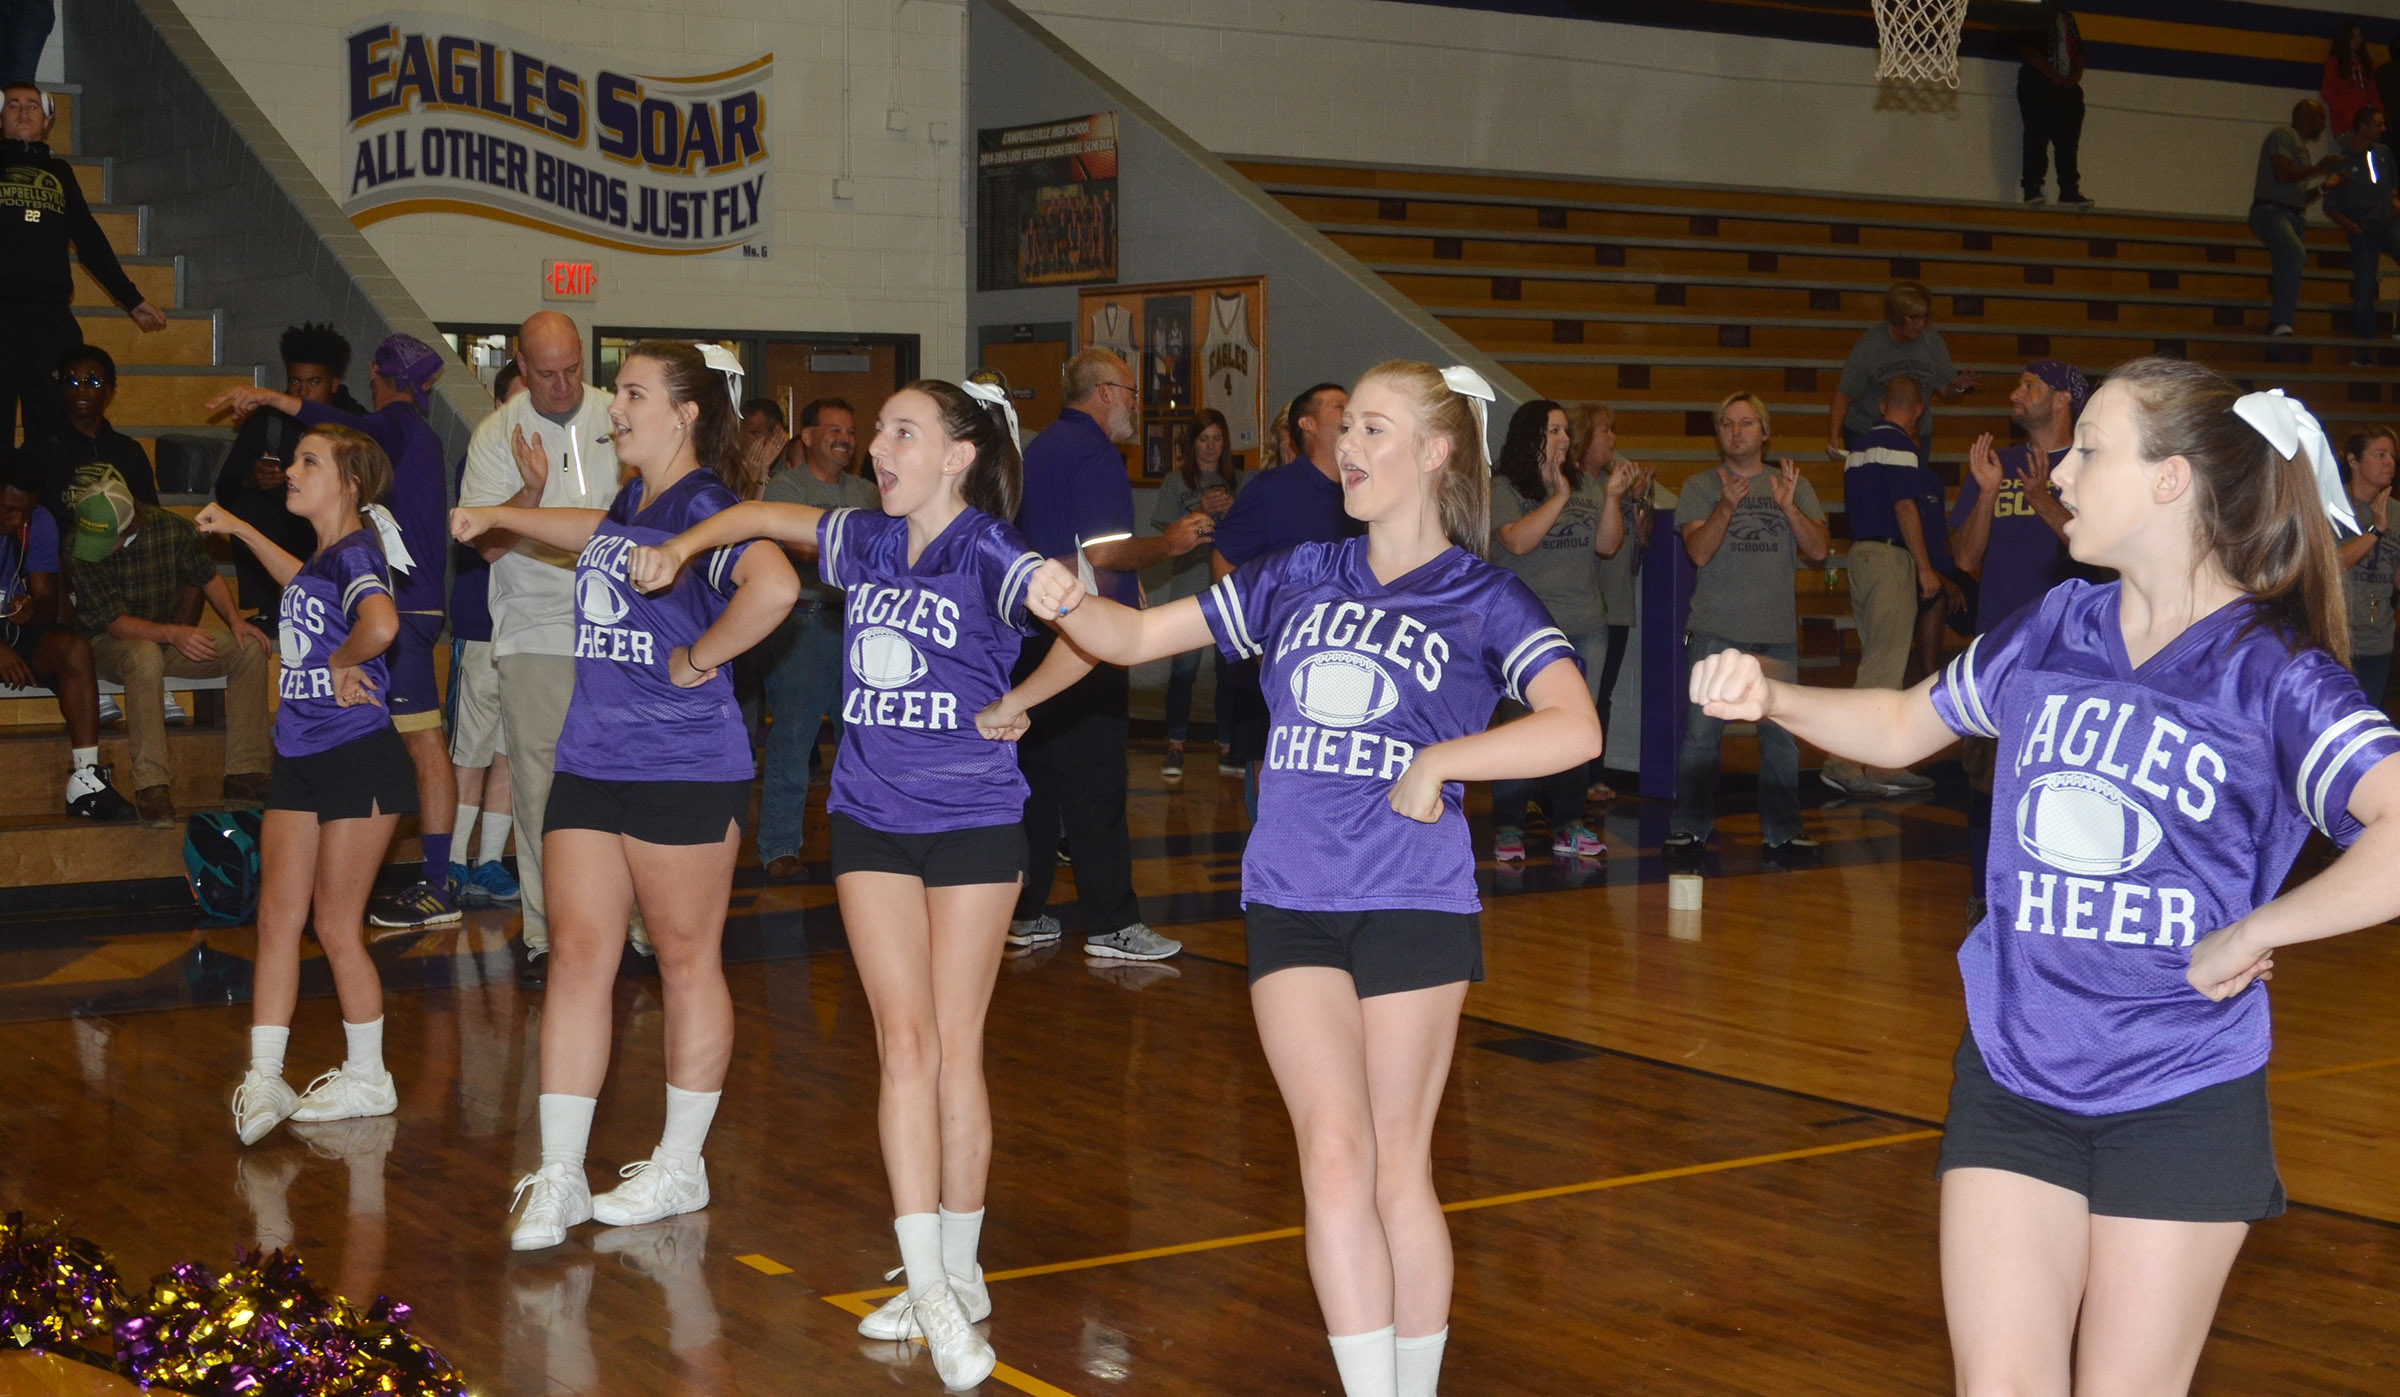 CHS cheerleaders lead their classmates in a cheer. From left are freshman Carly Adams, sophomores Haley Morris, Zoe McAninch and Isabella Osborne and junior Caleigh Bright.